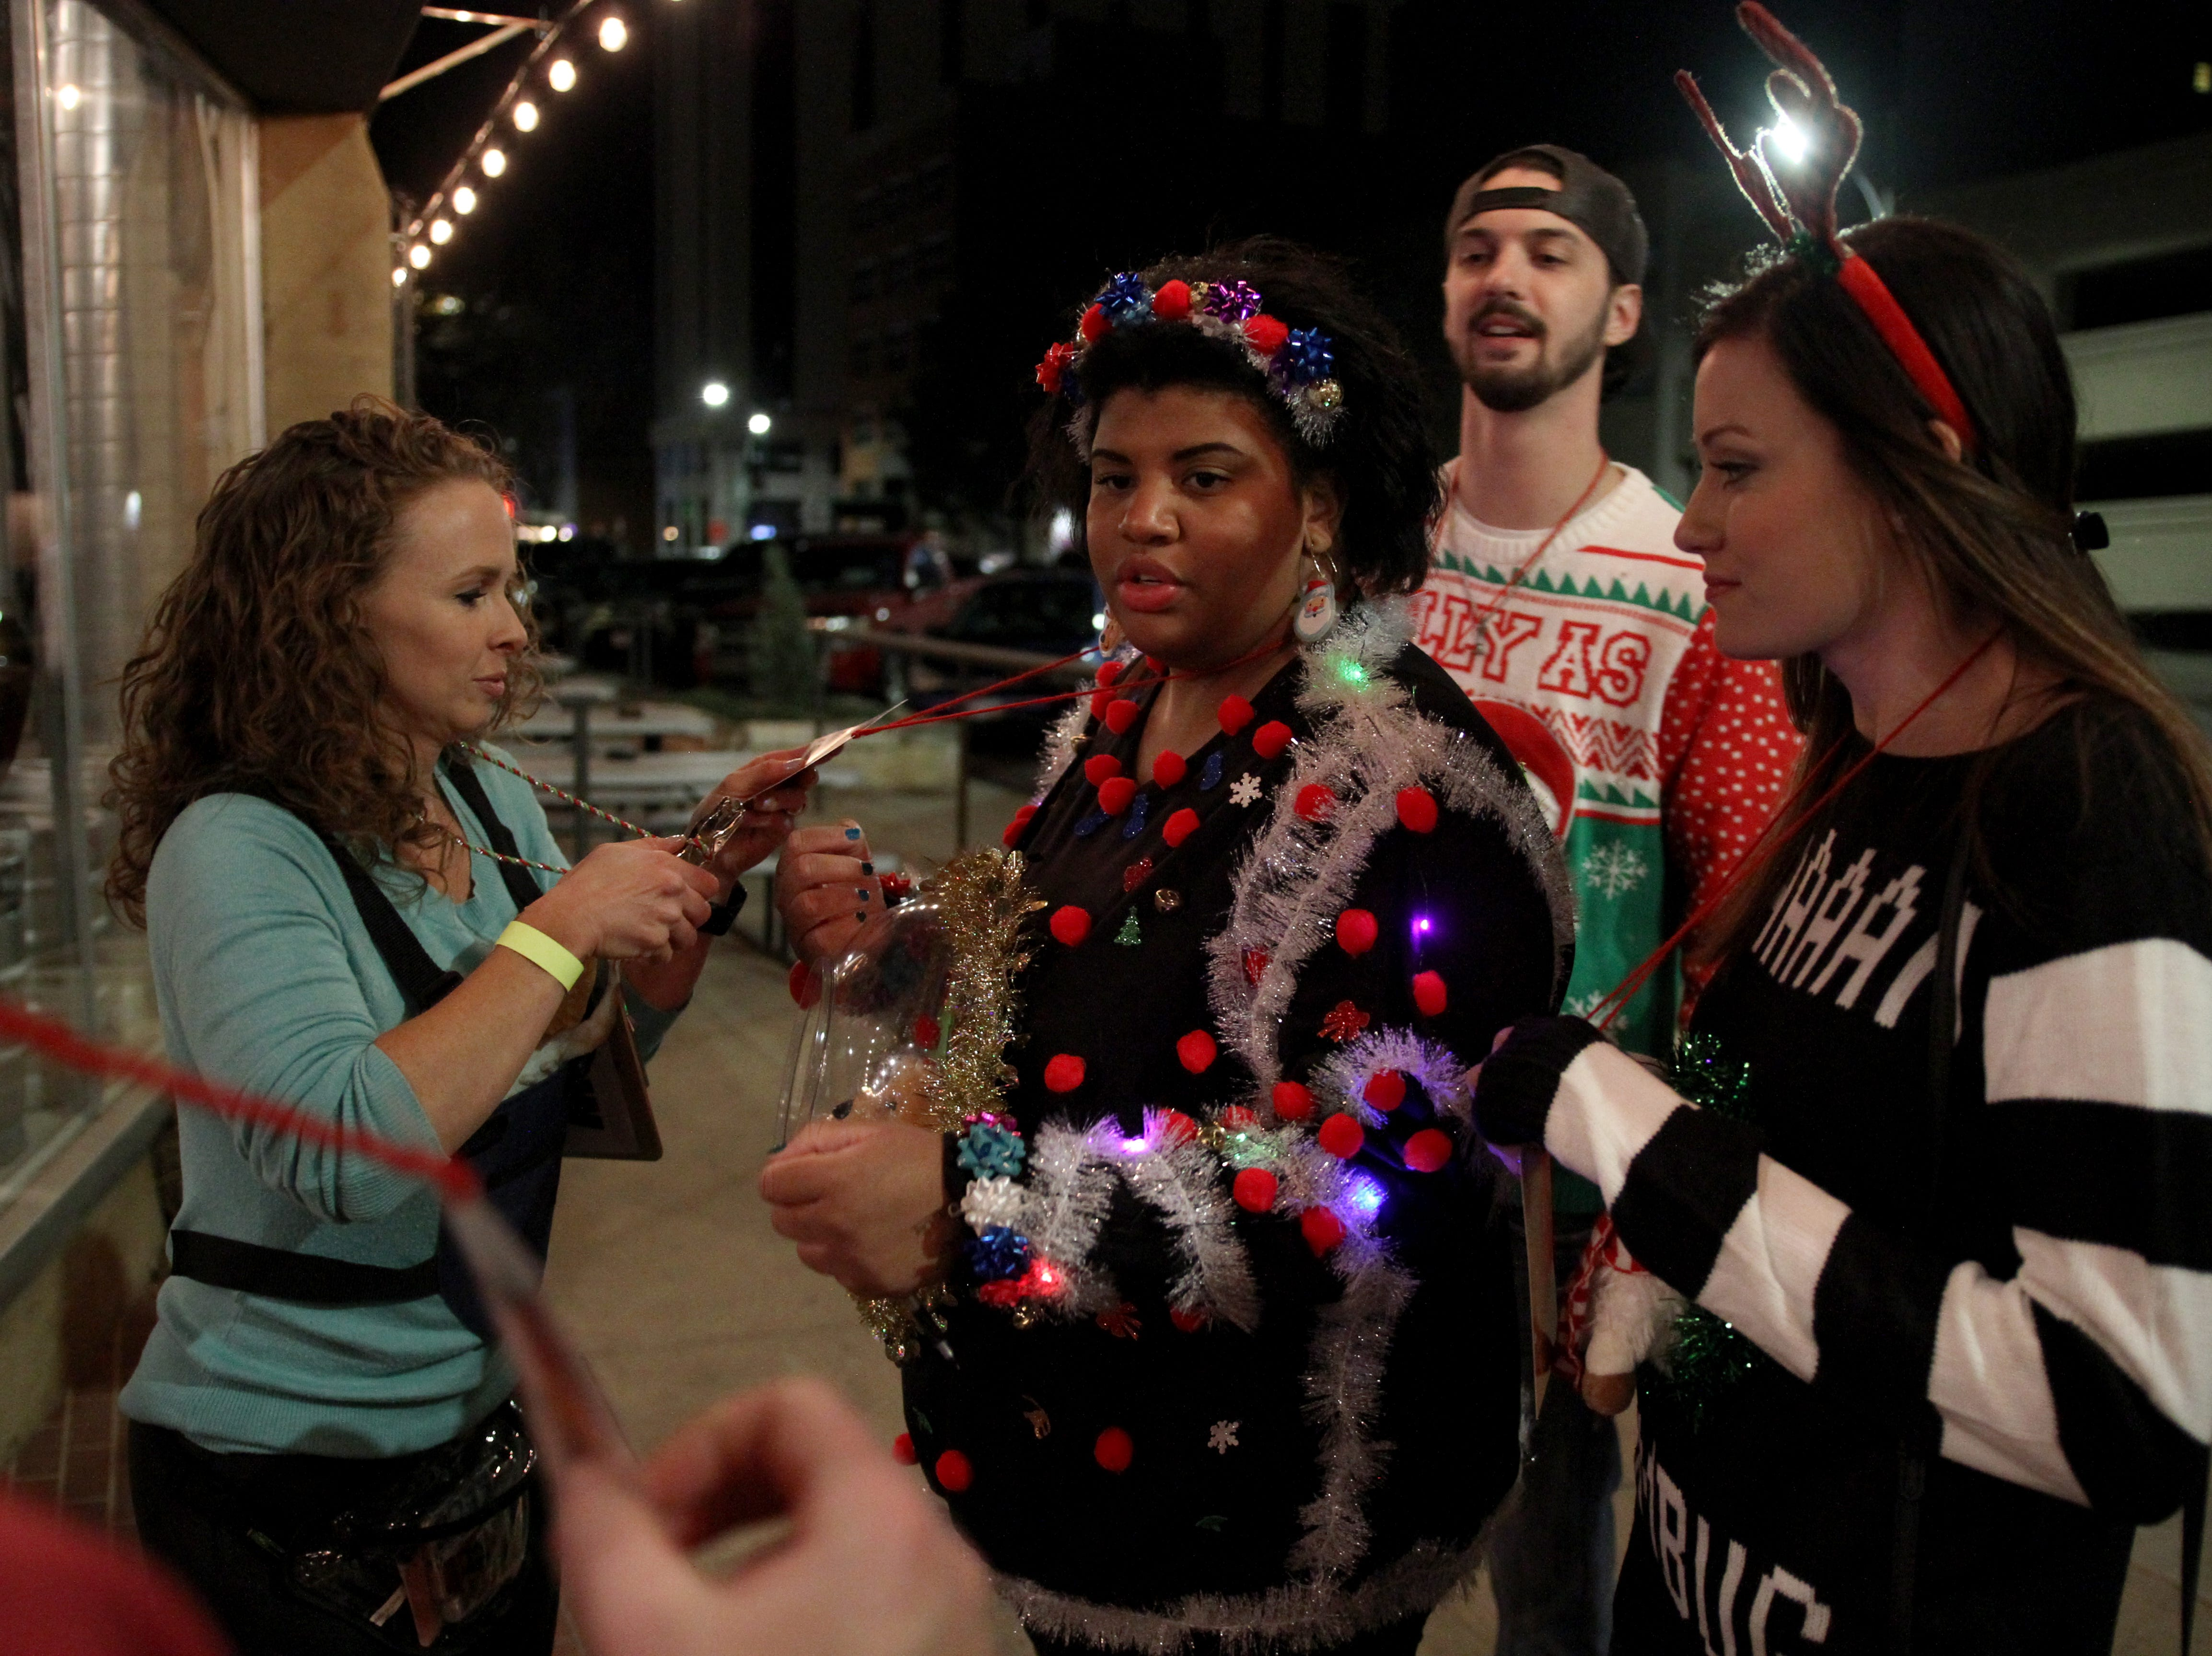 Stormi Arnold punches Kayla Reid card outside Wichita Falls Brewing Company during Rudolph's First Ugly Sweater Crawl Saturday, Dec. 1, 2018, in Downtown Wichita Falls.